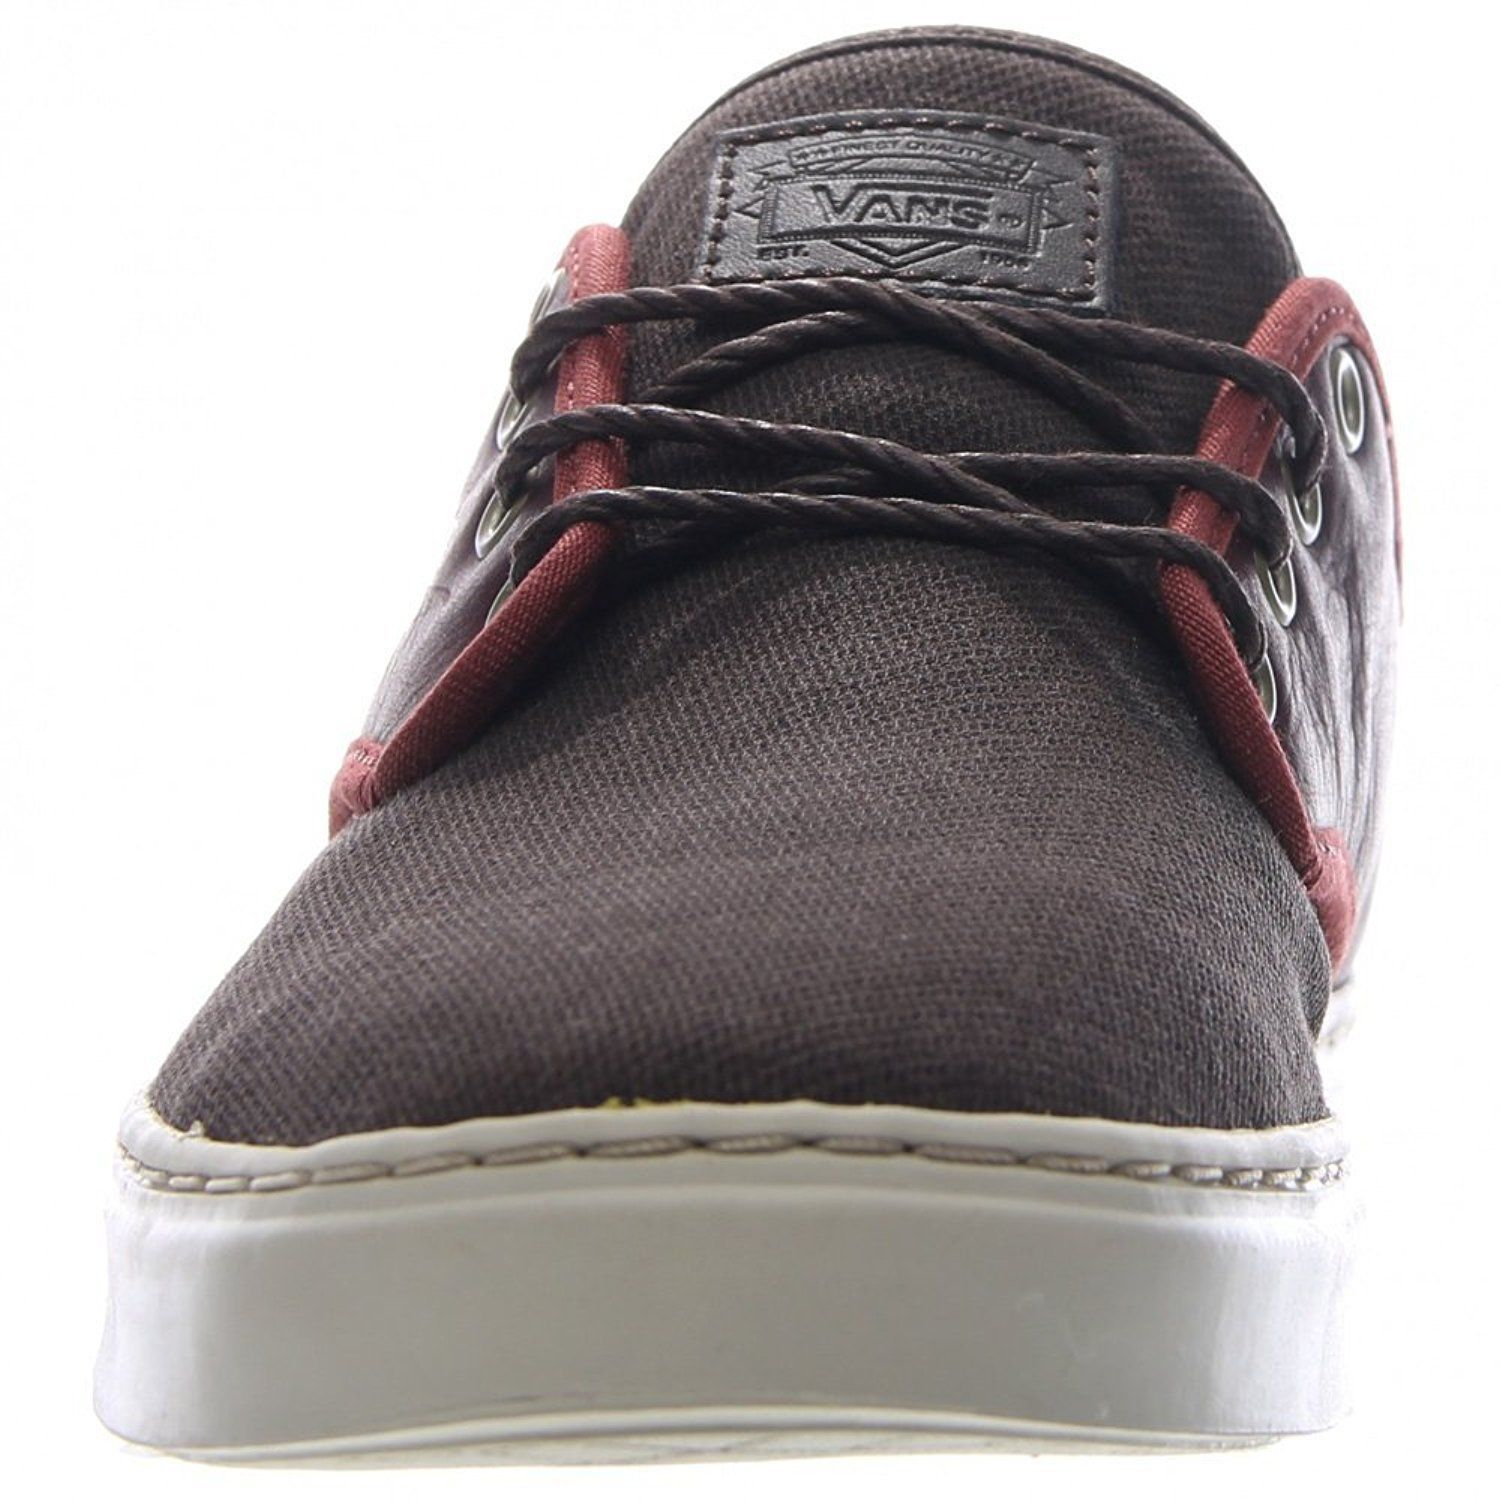 VANS OTW COLLECTION LUDLOW + LEATHER HENNA BROWN SHOES MENS SZ 7.5 BURGUNDY image 4